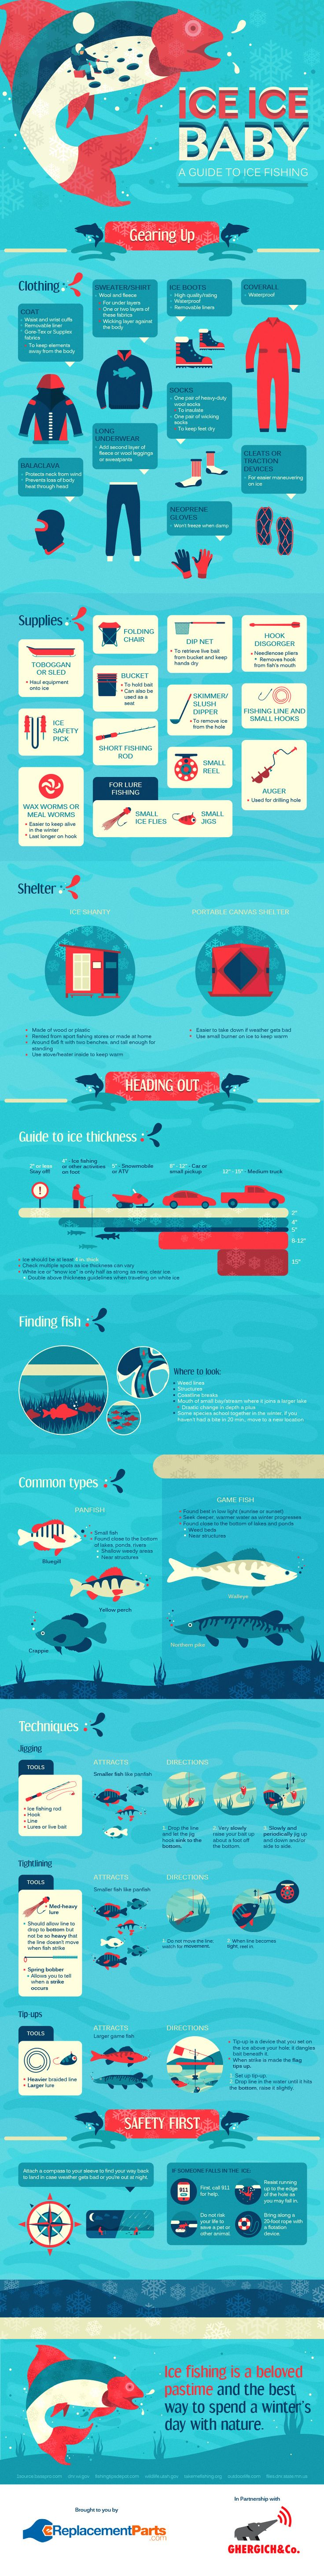 This Guide to Ice Fishing is full of information. We'll be ice fishing soon, there's plenty of ice now. It will be nice to have fresh fish on the table.